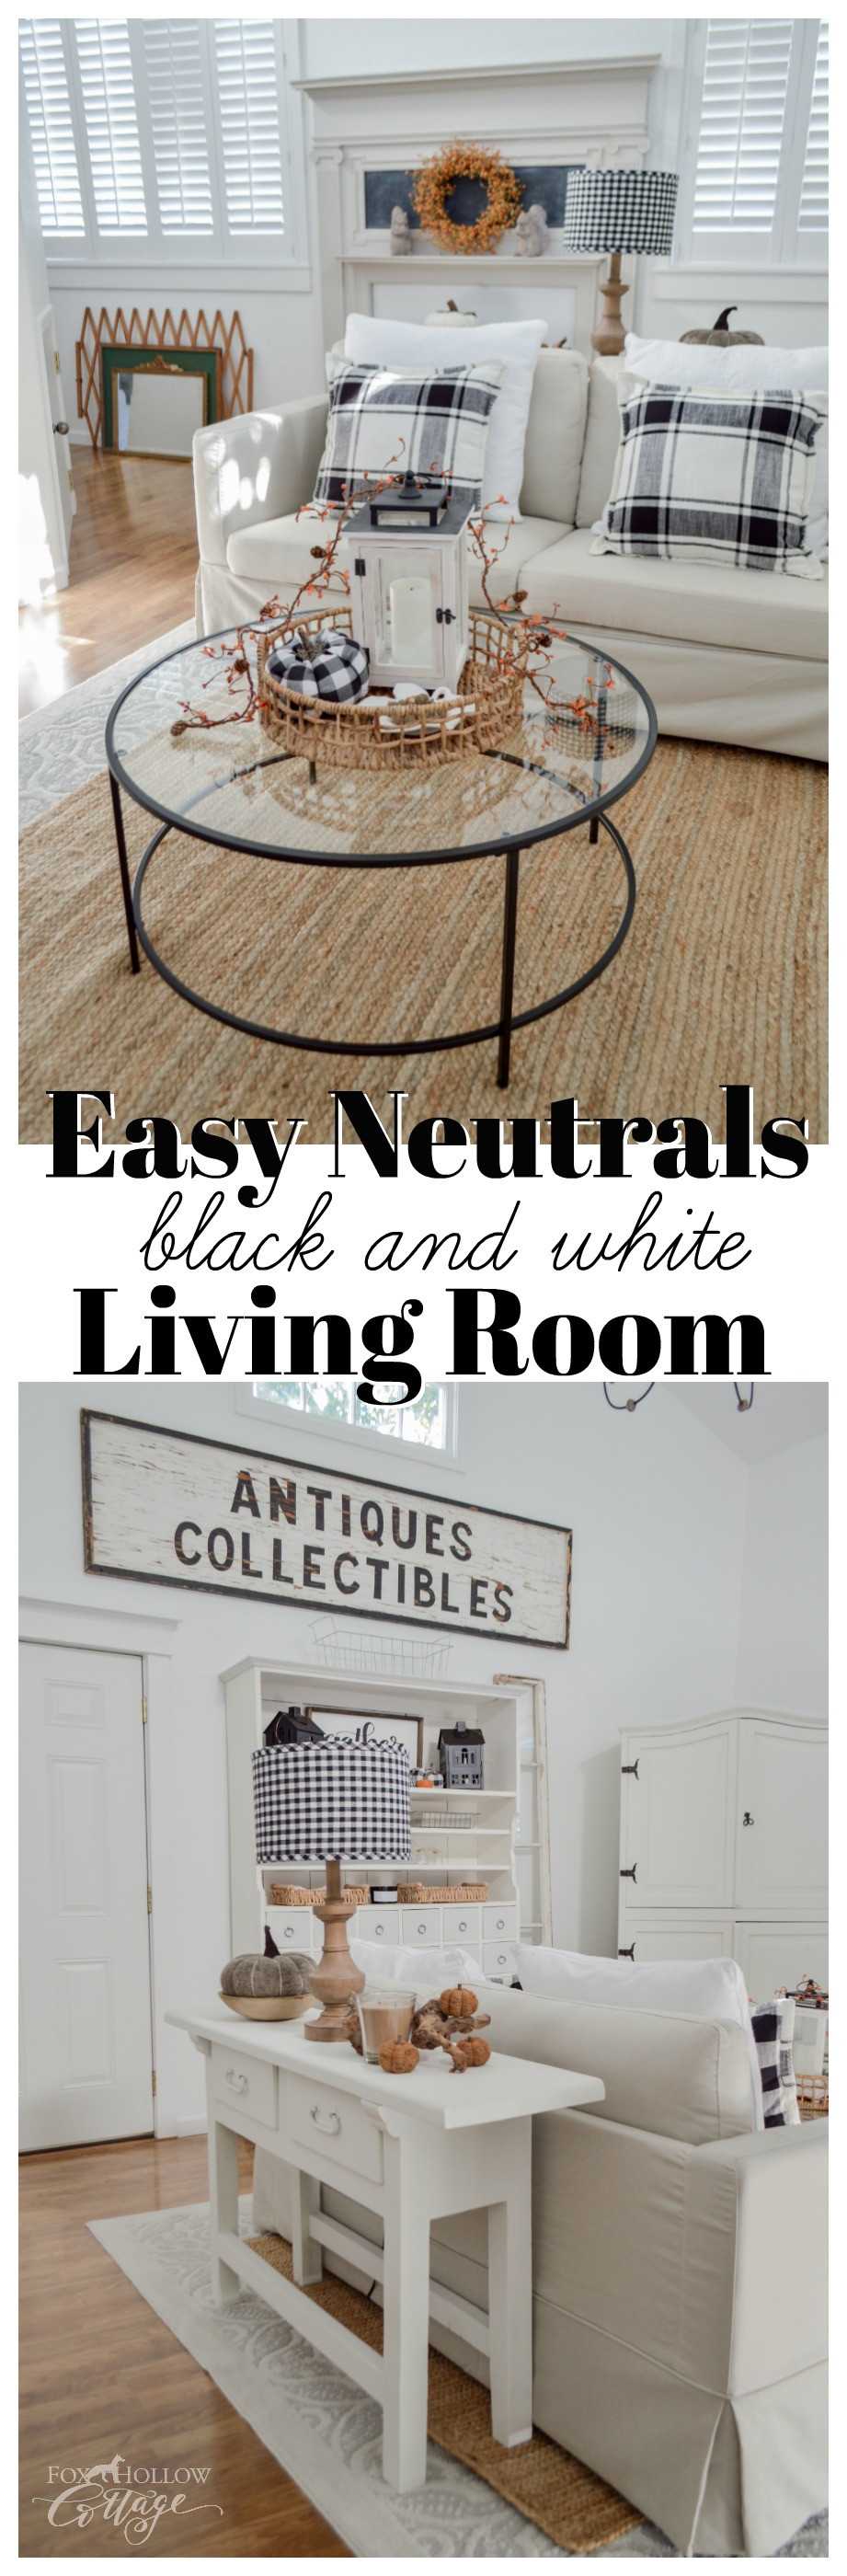 Black, White and Neutral Cozy Fall Home Decorating Ideas -